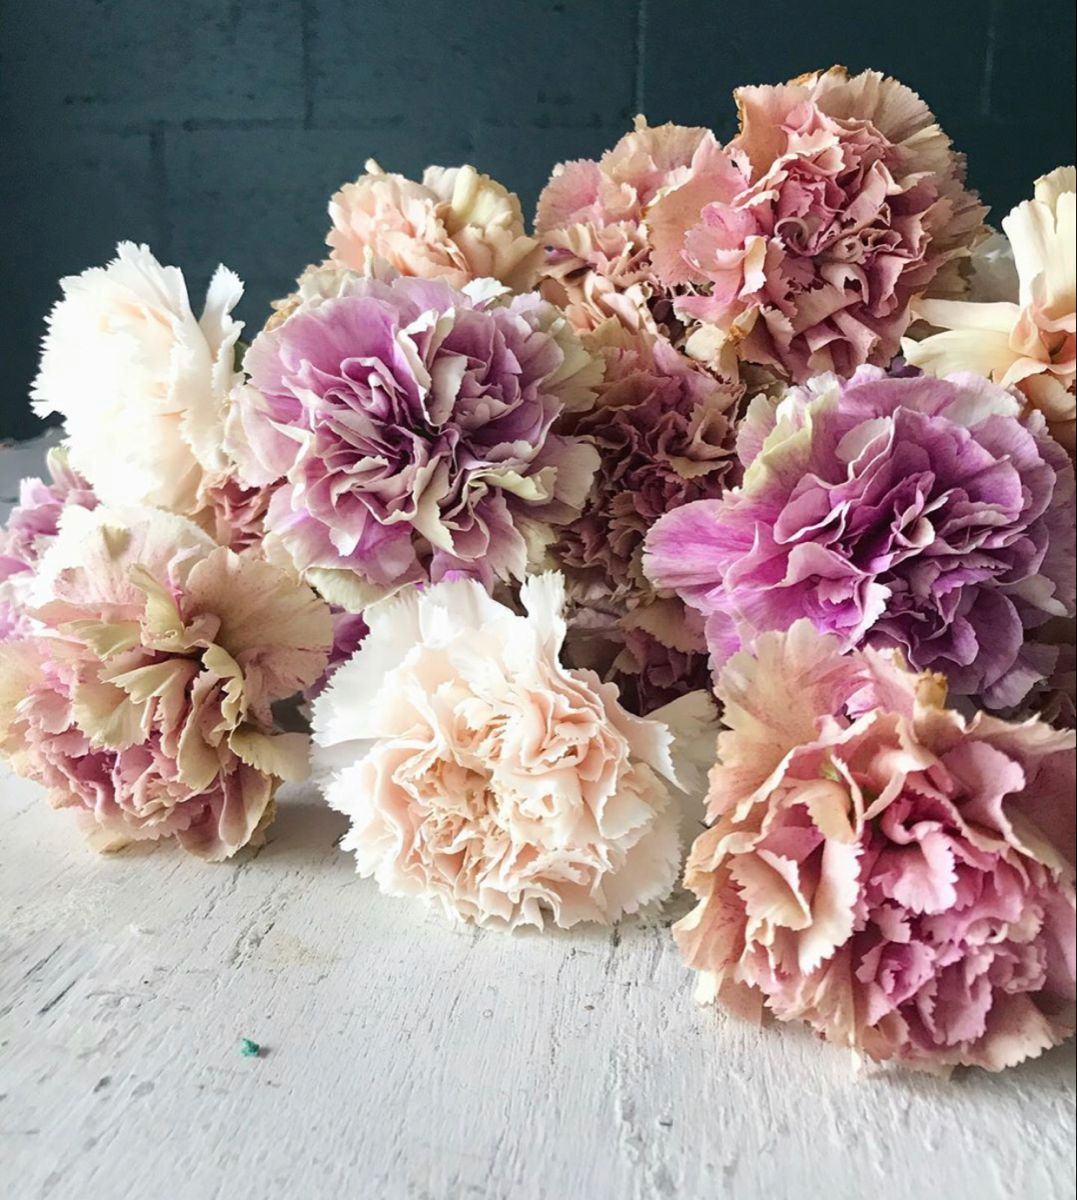 Carnation Flower In 2020 Flowers For Sale Carnation Flower Long Lasting Flower